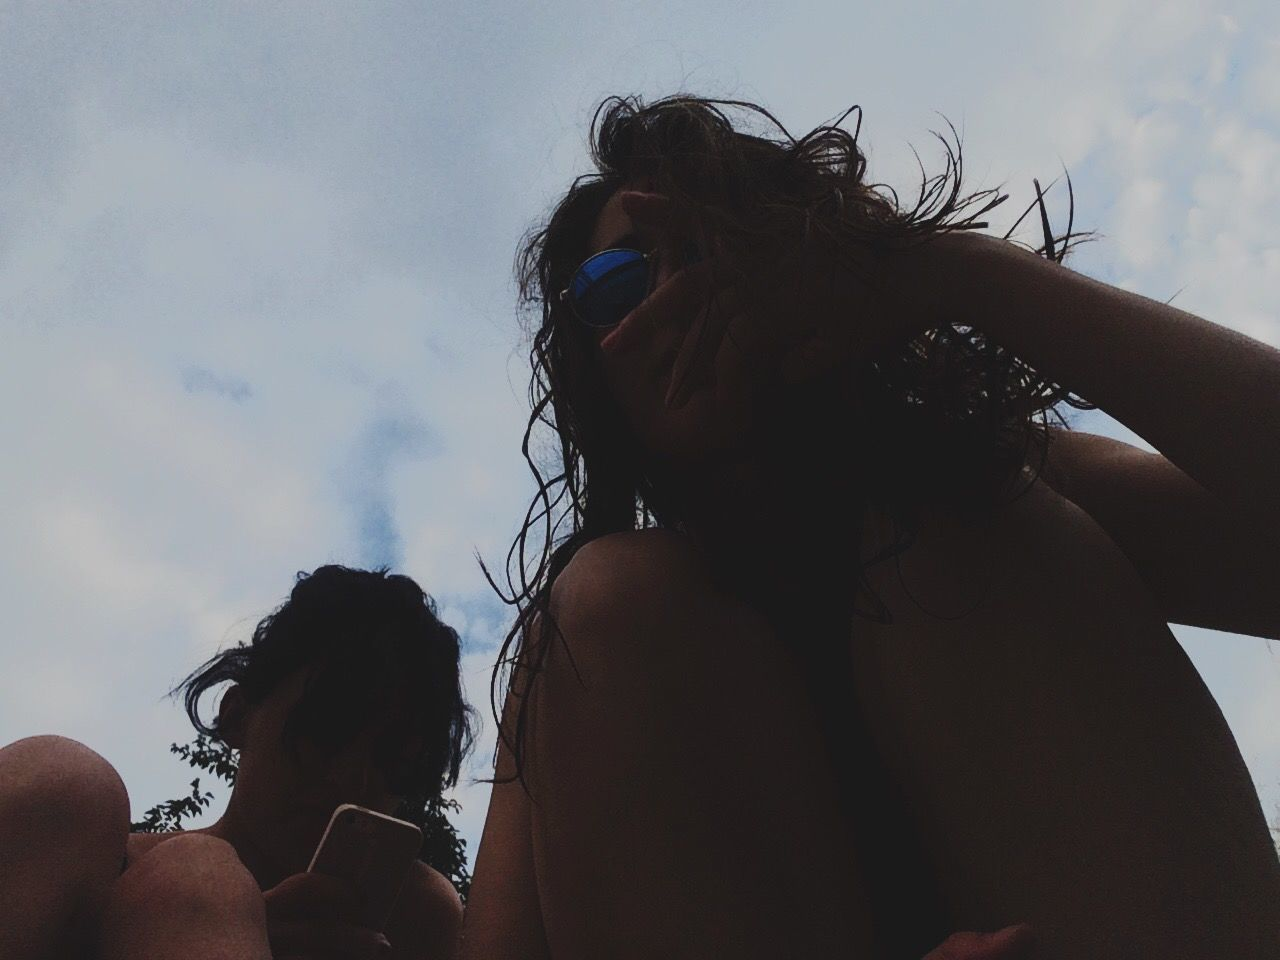 real people, togetherness, leisure activity, lifestyles, long hair, sky, friendship, childhood, bonding, women, day, outdoors, people